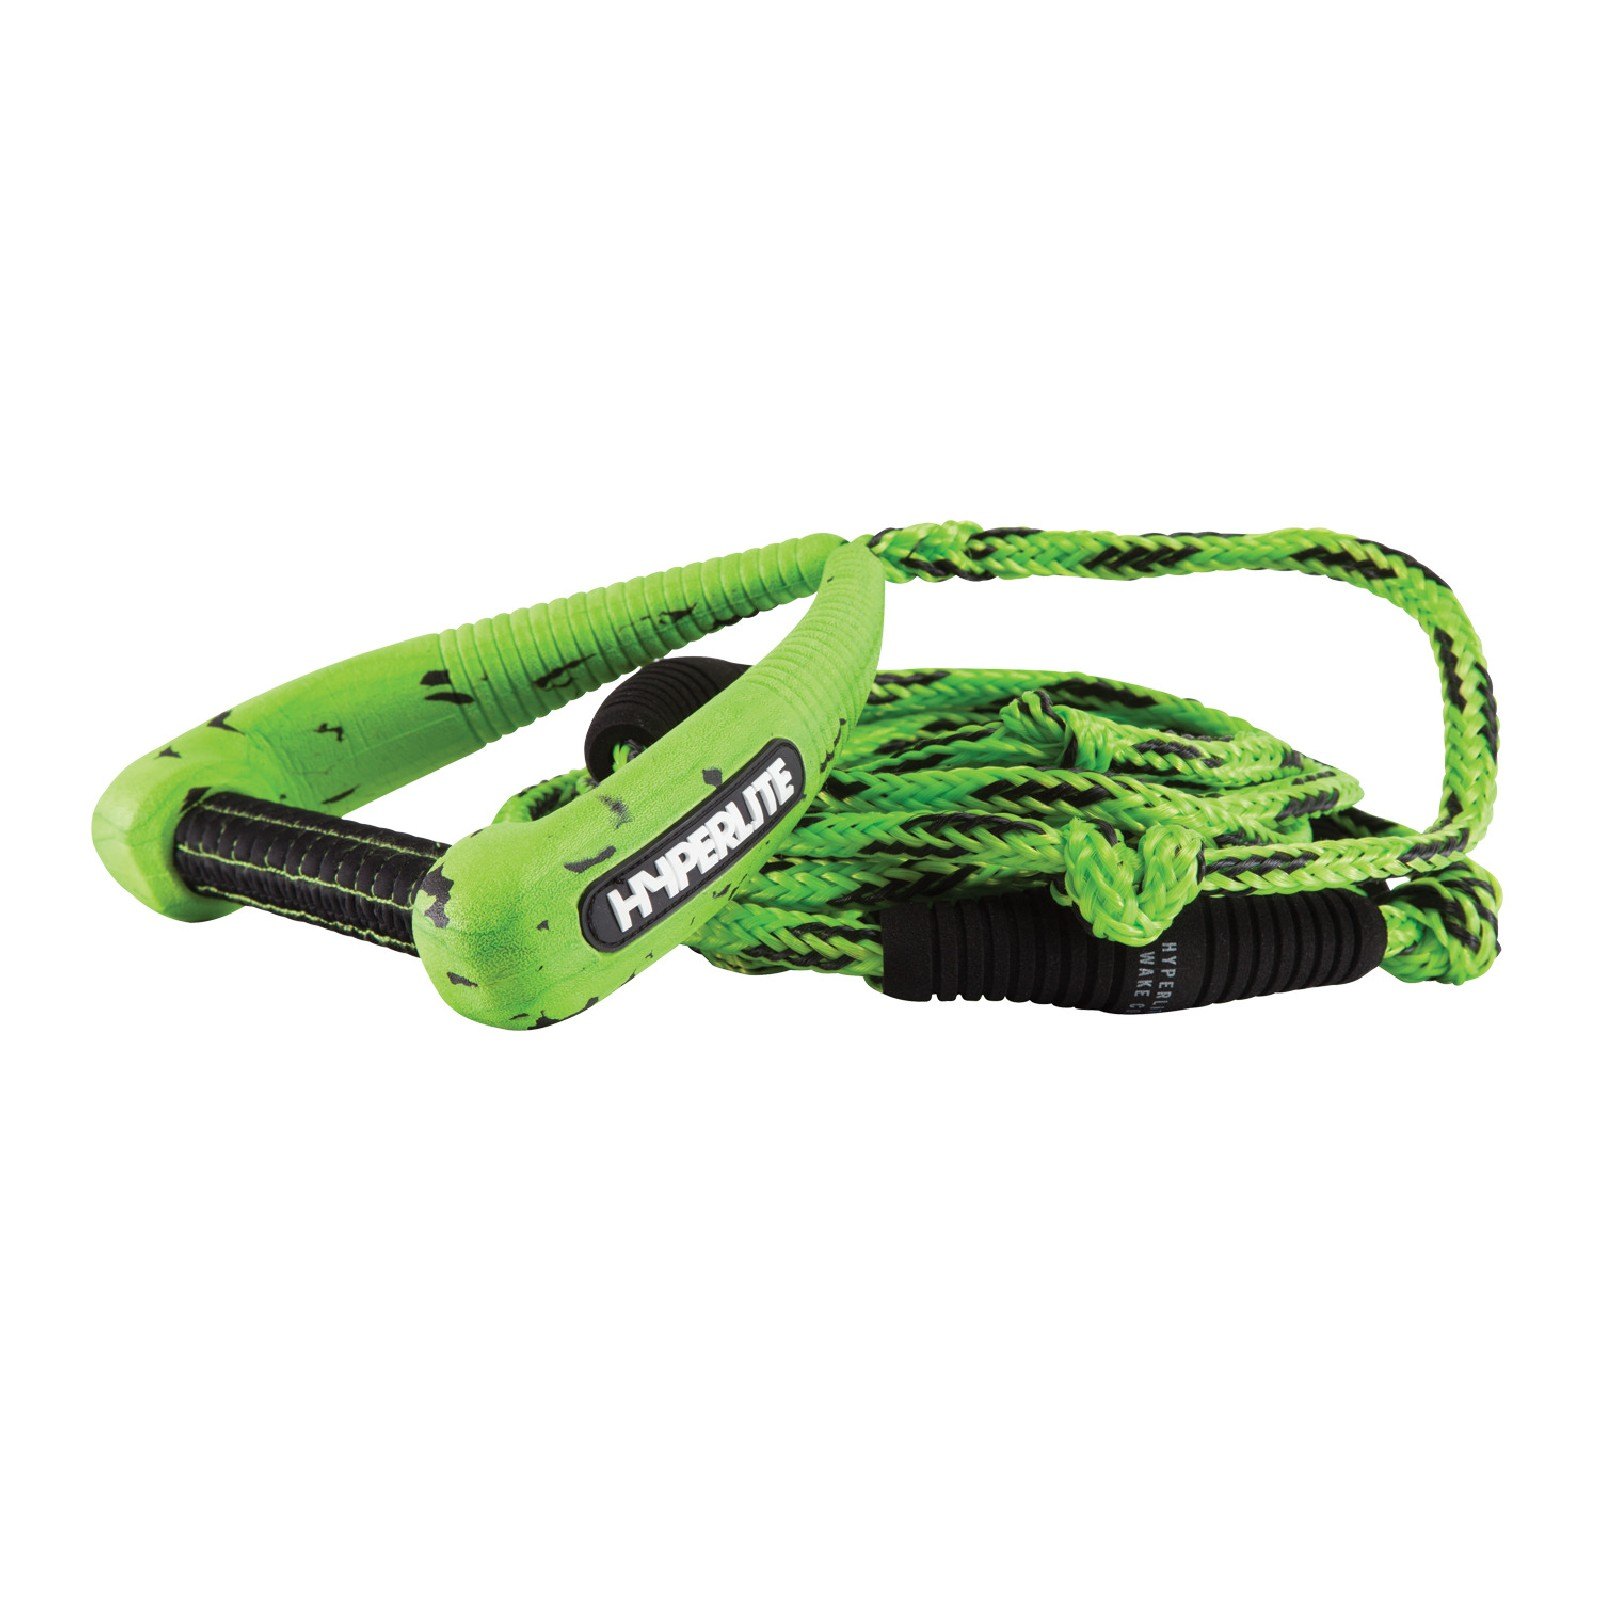 25' PRO SURF ROPE W/HANDLE PACKAGE - GREEN HYPERLITE 2019